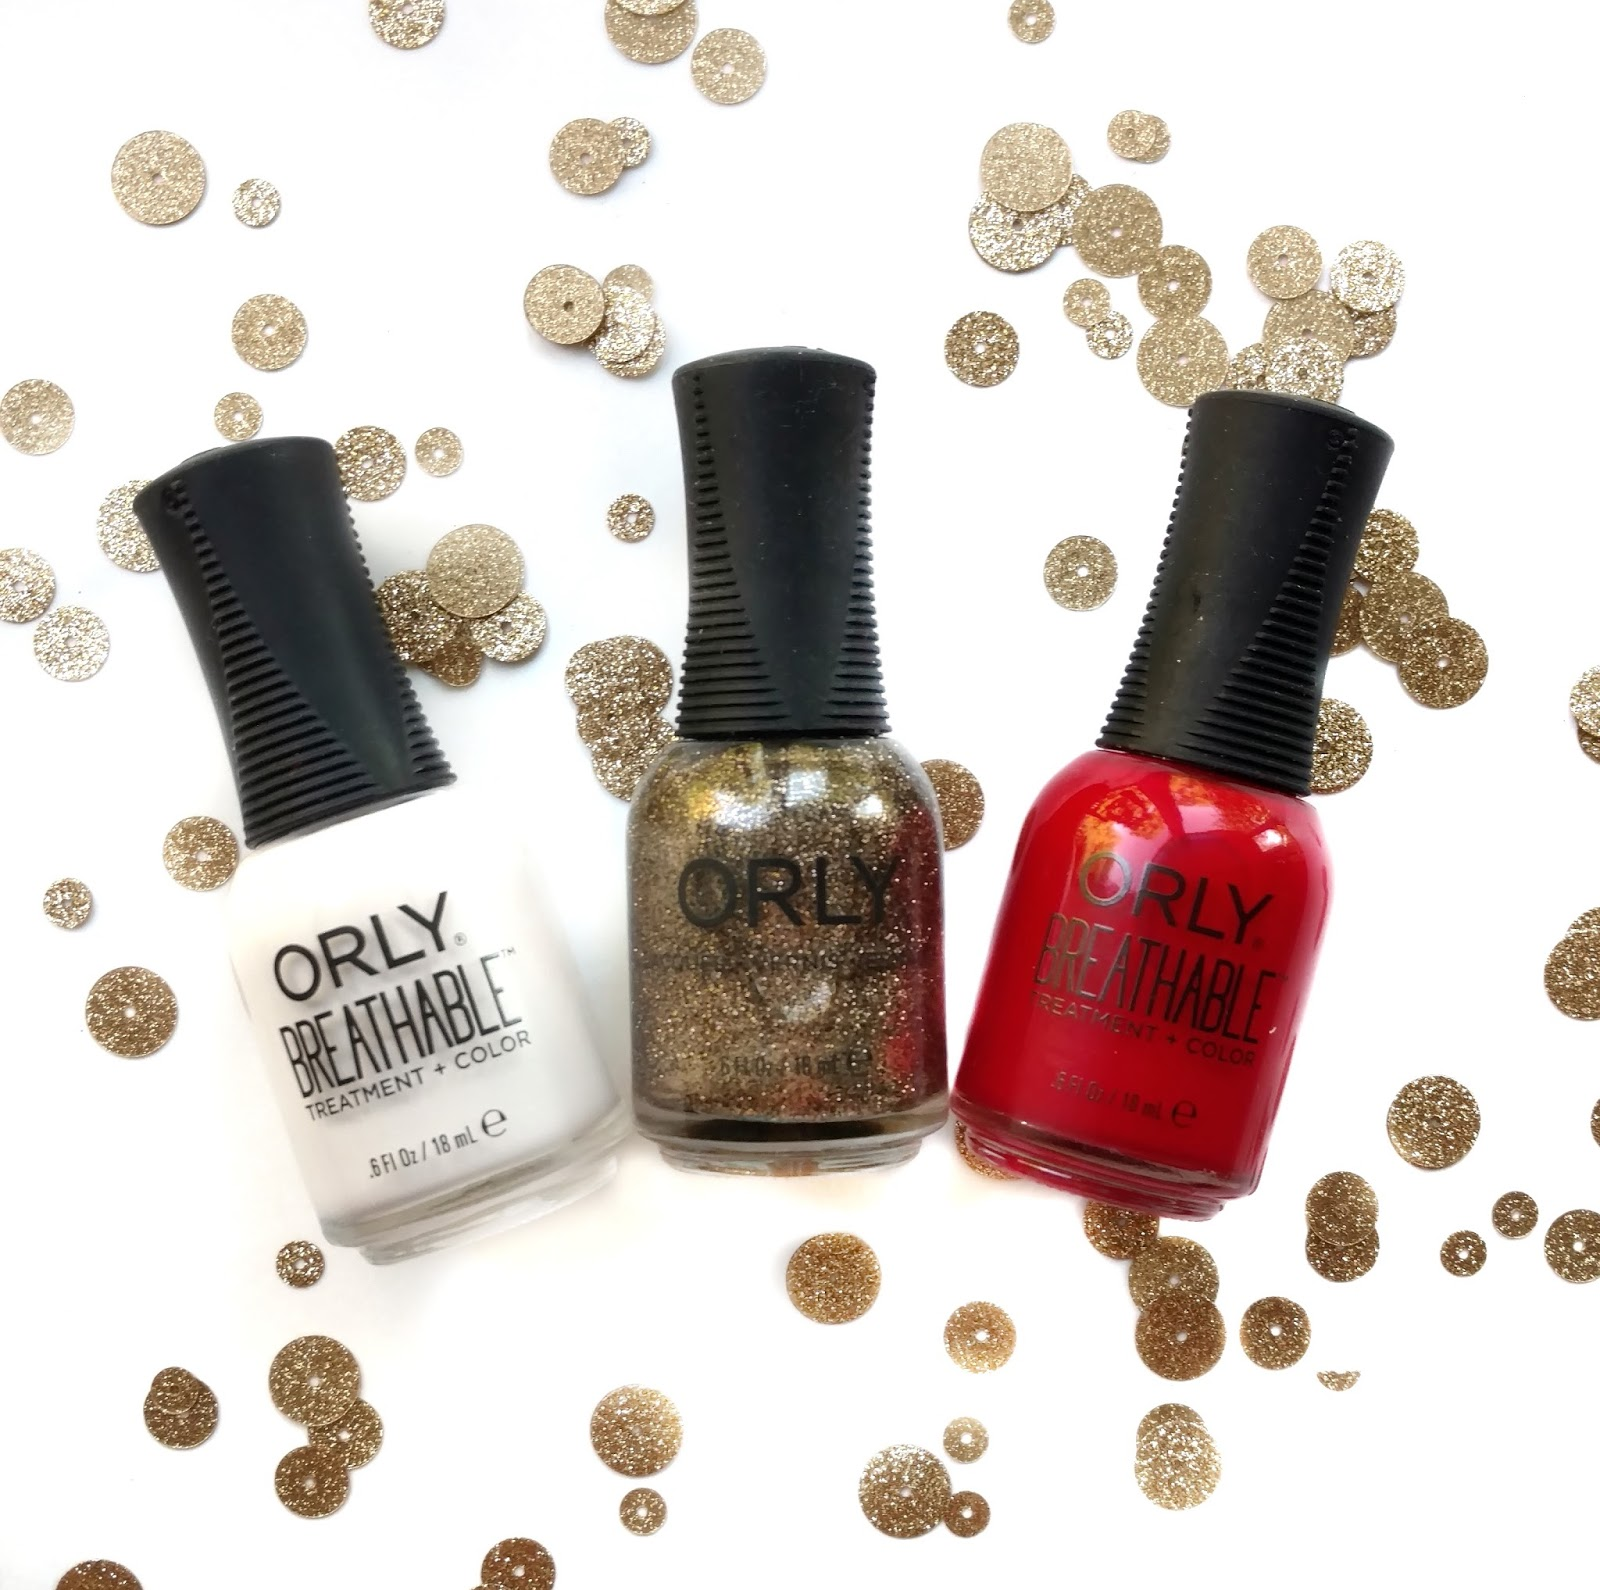 Orly Nail Polish Review | The Budget Beauty Blog